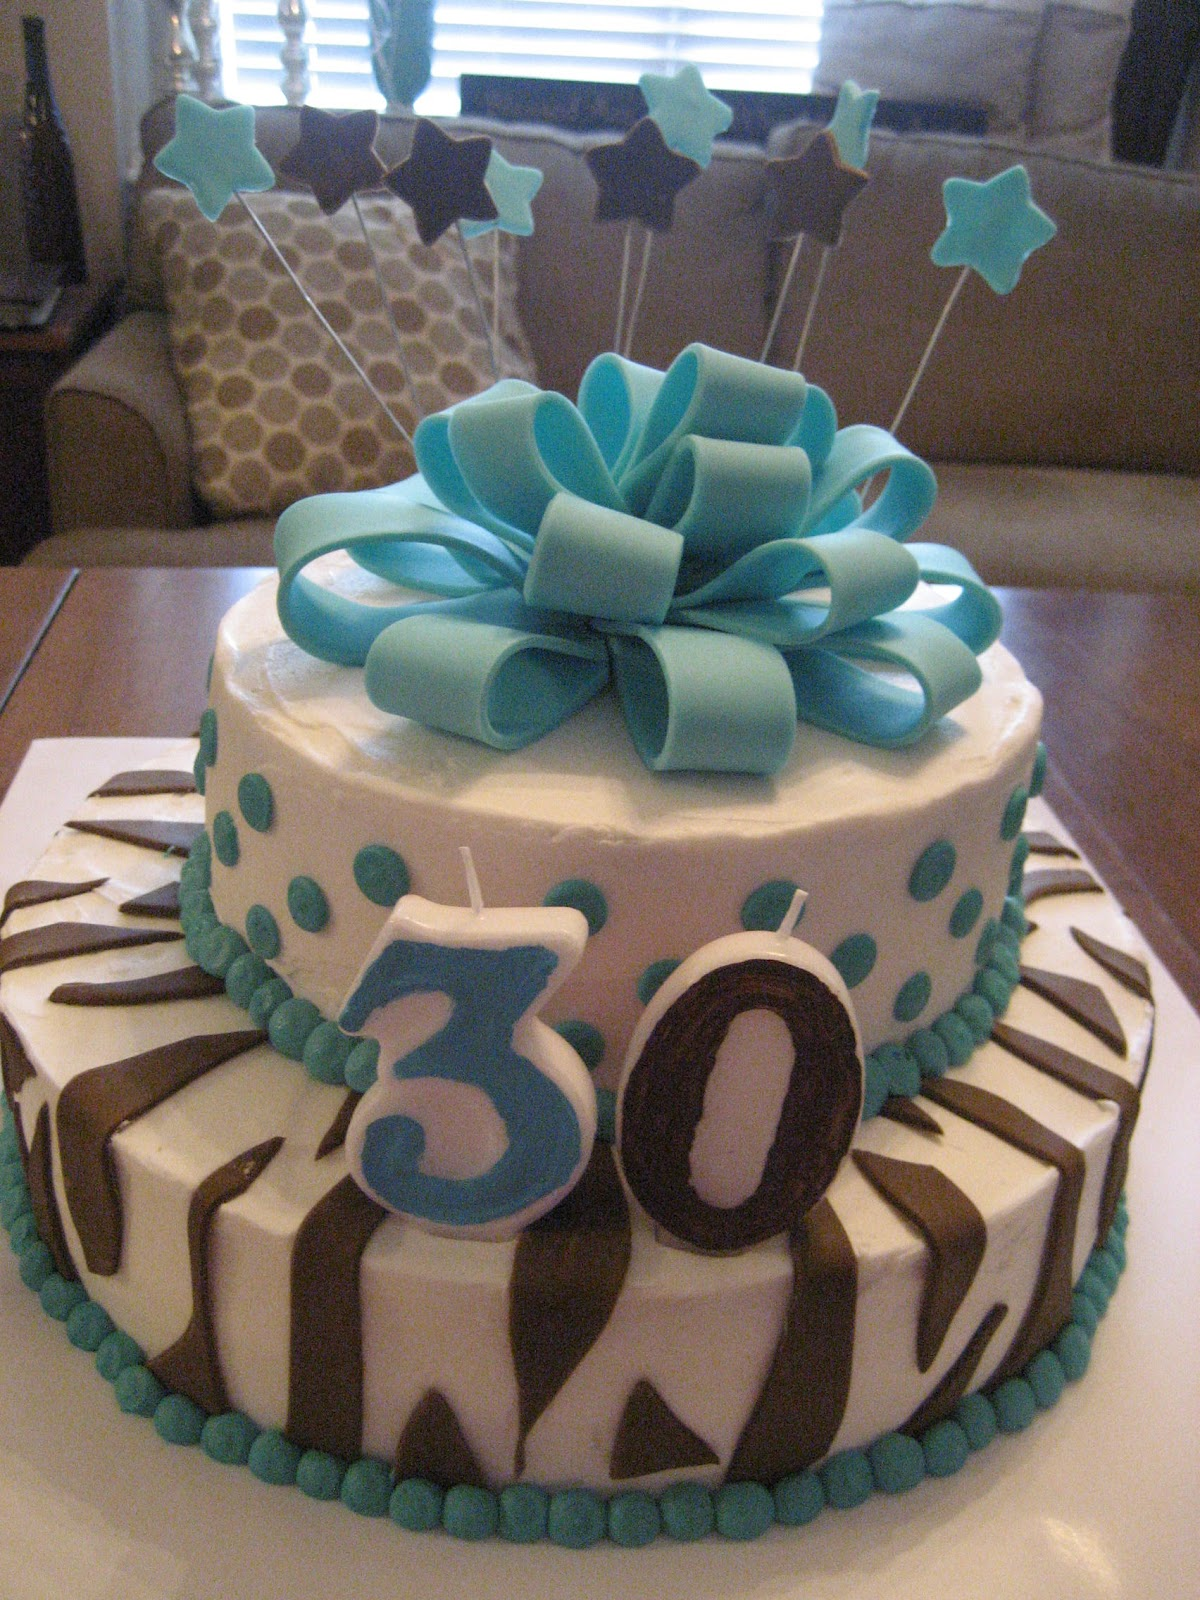 In the Year of Thirty: Turning 30